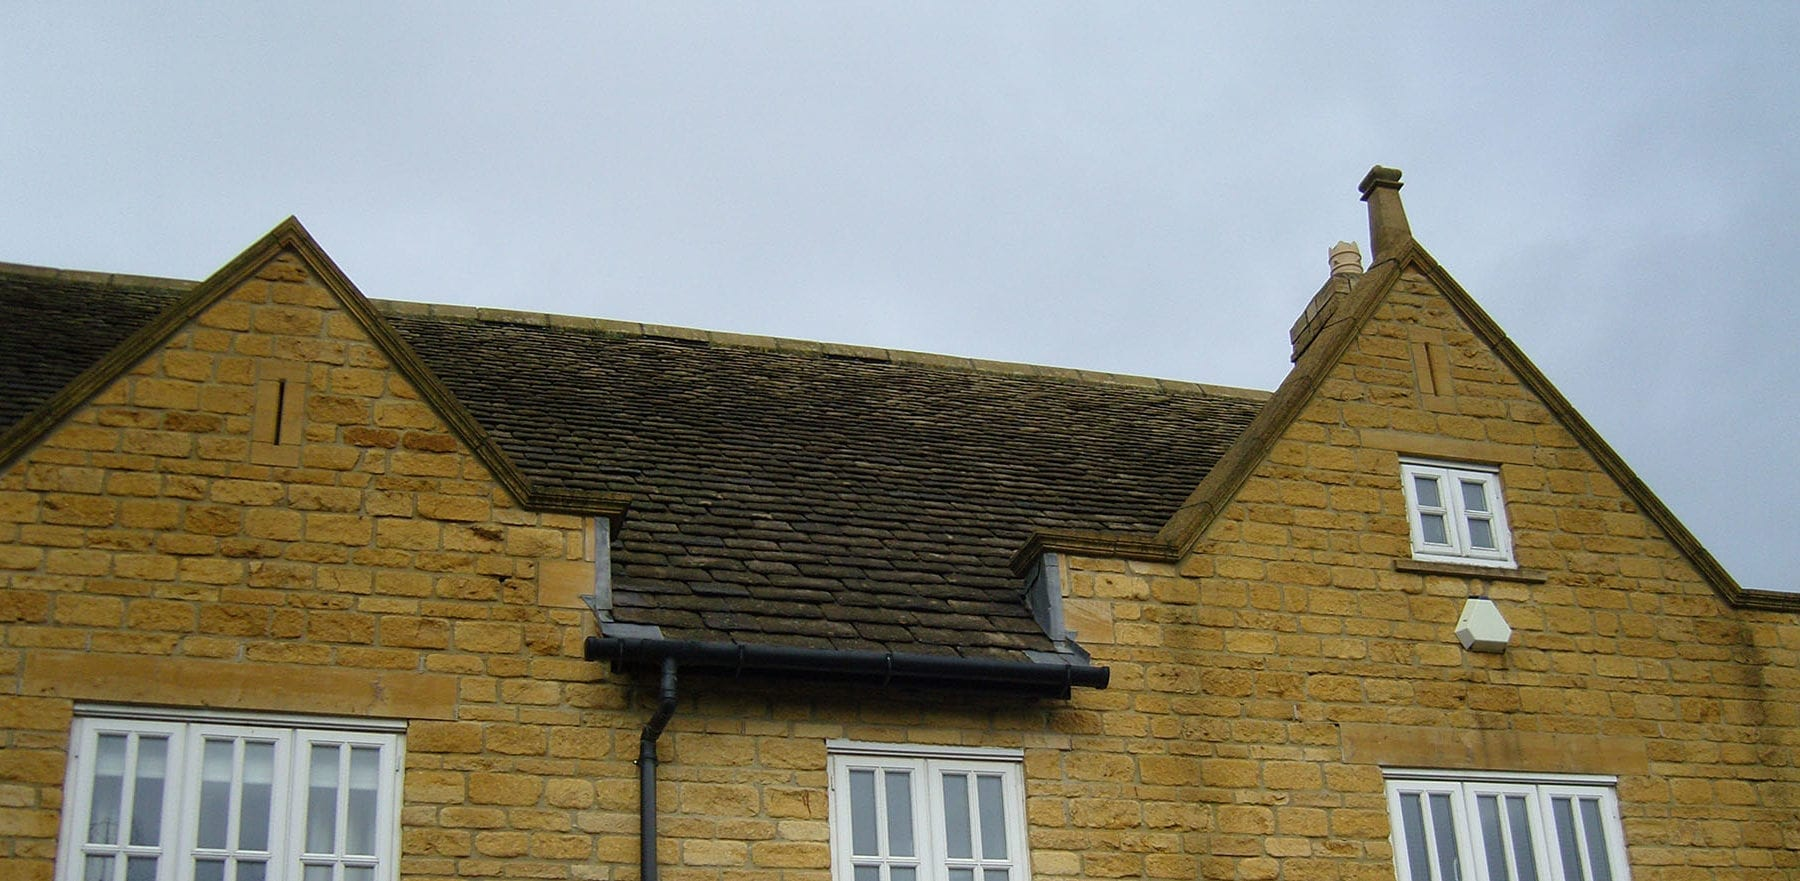 Lifestiles - Natural Stone Aged Roof Tiles - Cirencester, England 2